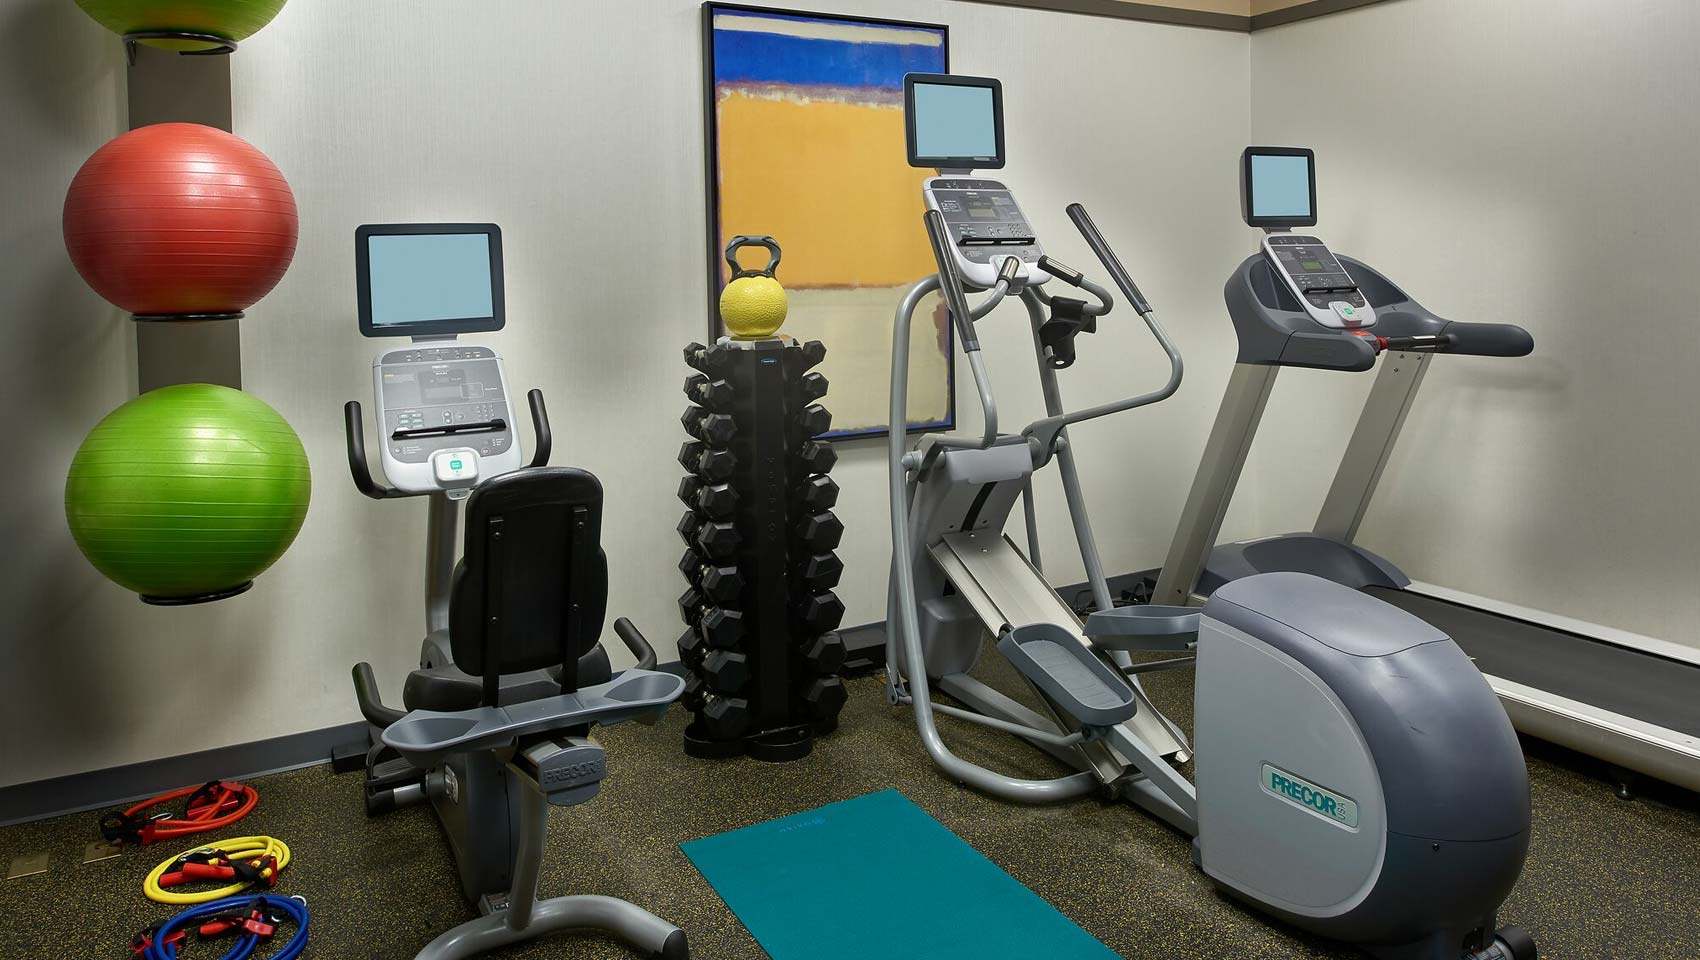 24 hour hotel fitness center